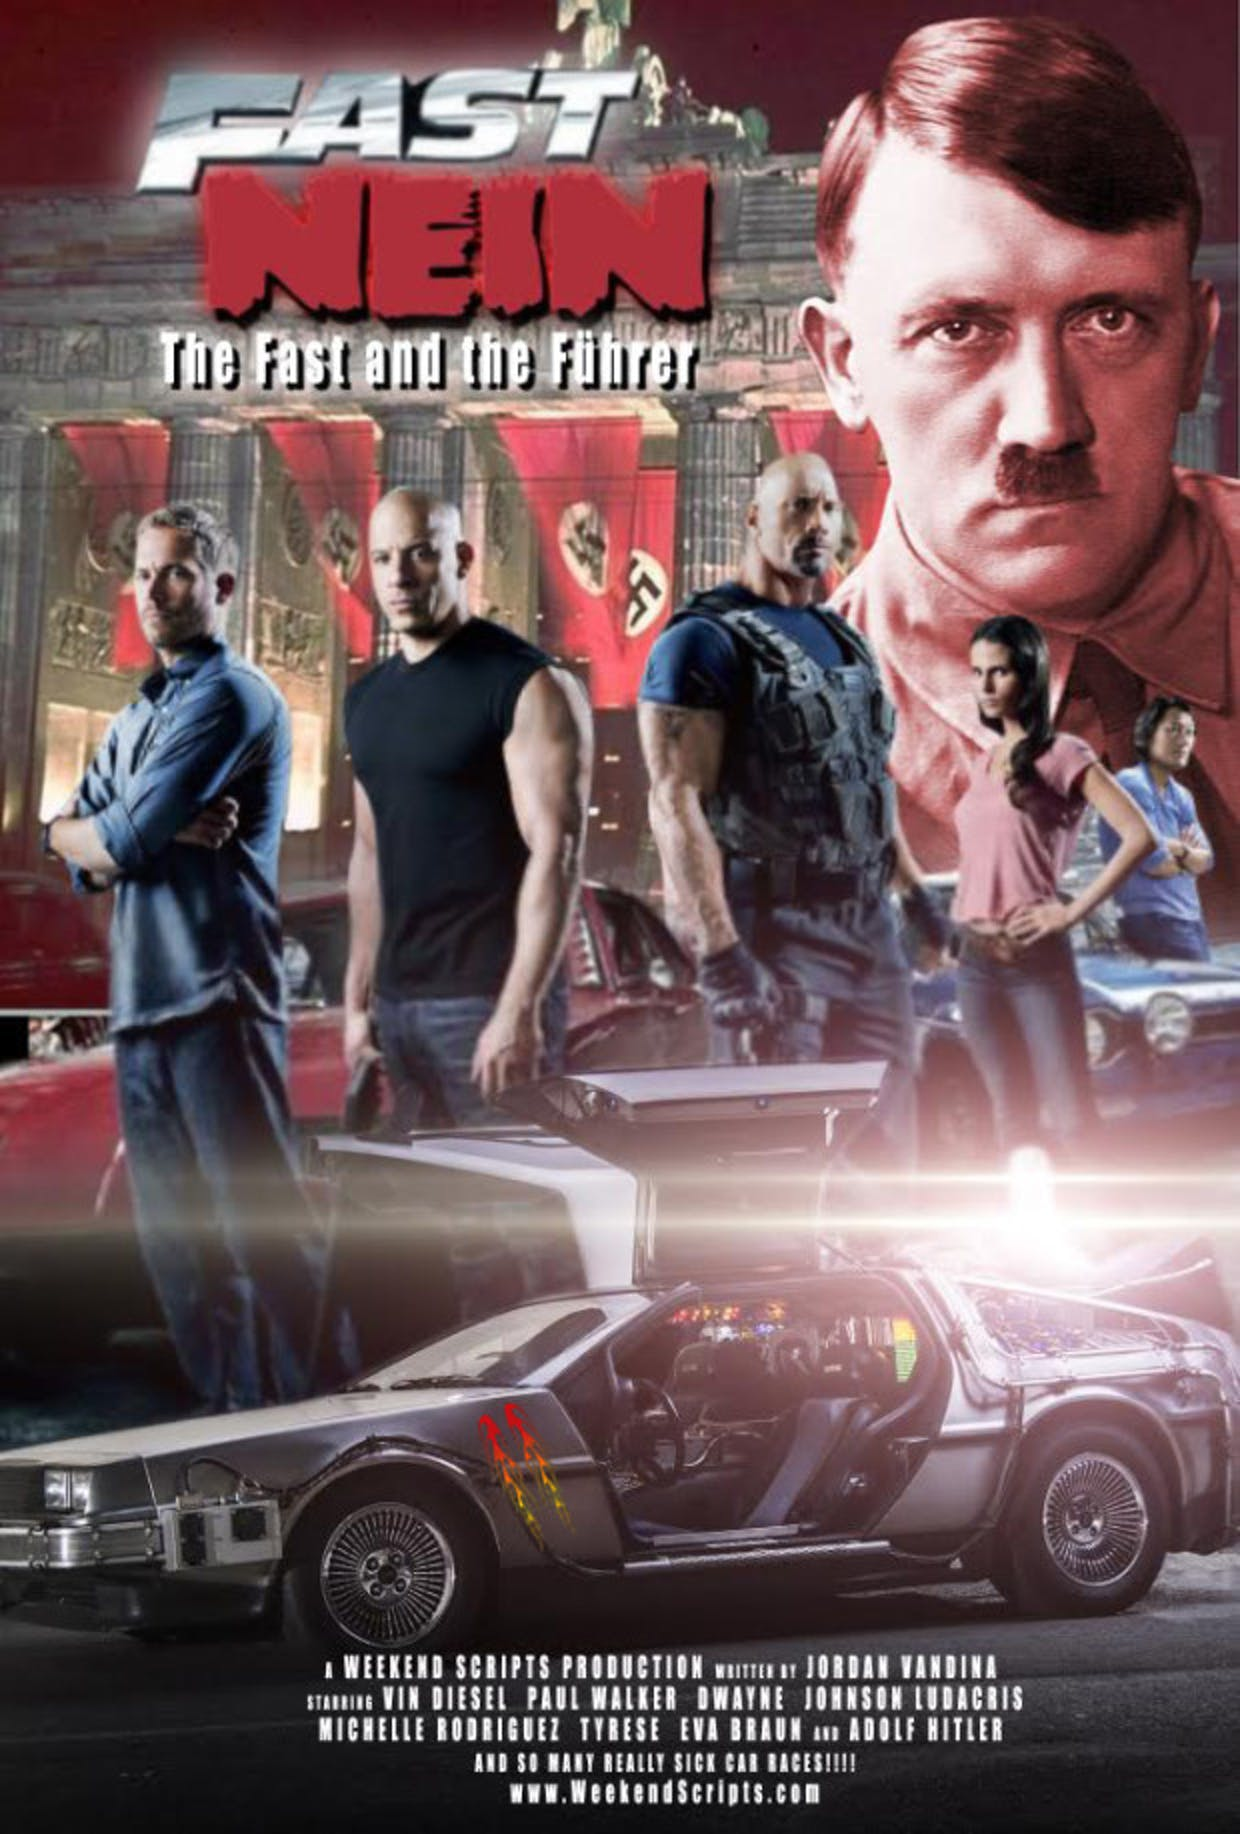 The Genius Behind The Fast And The Furious Vs Hitler Script Is A